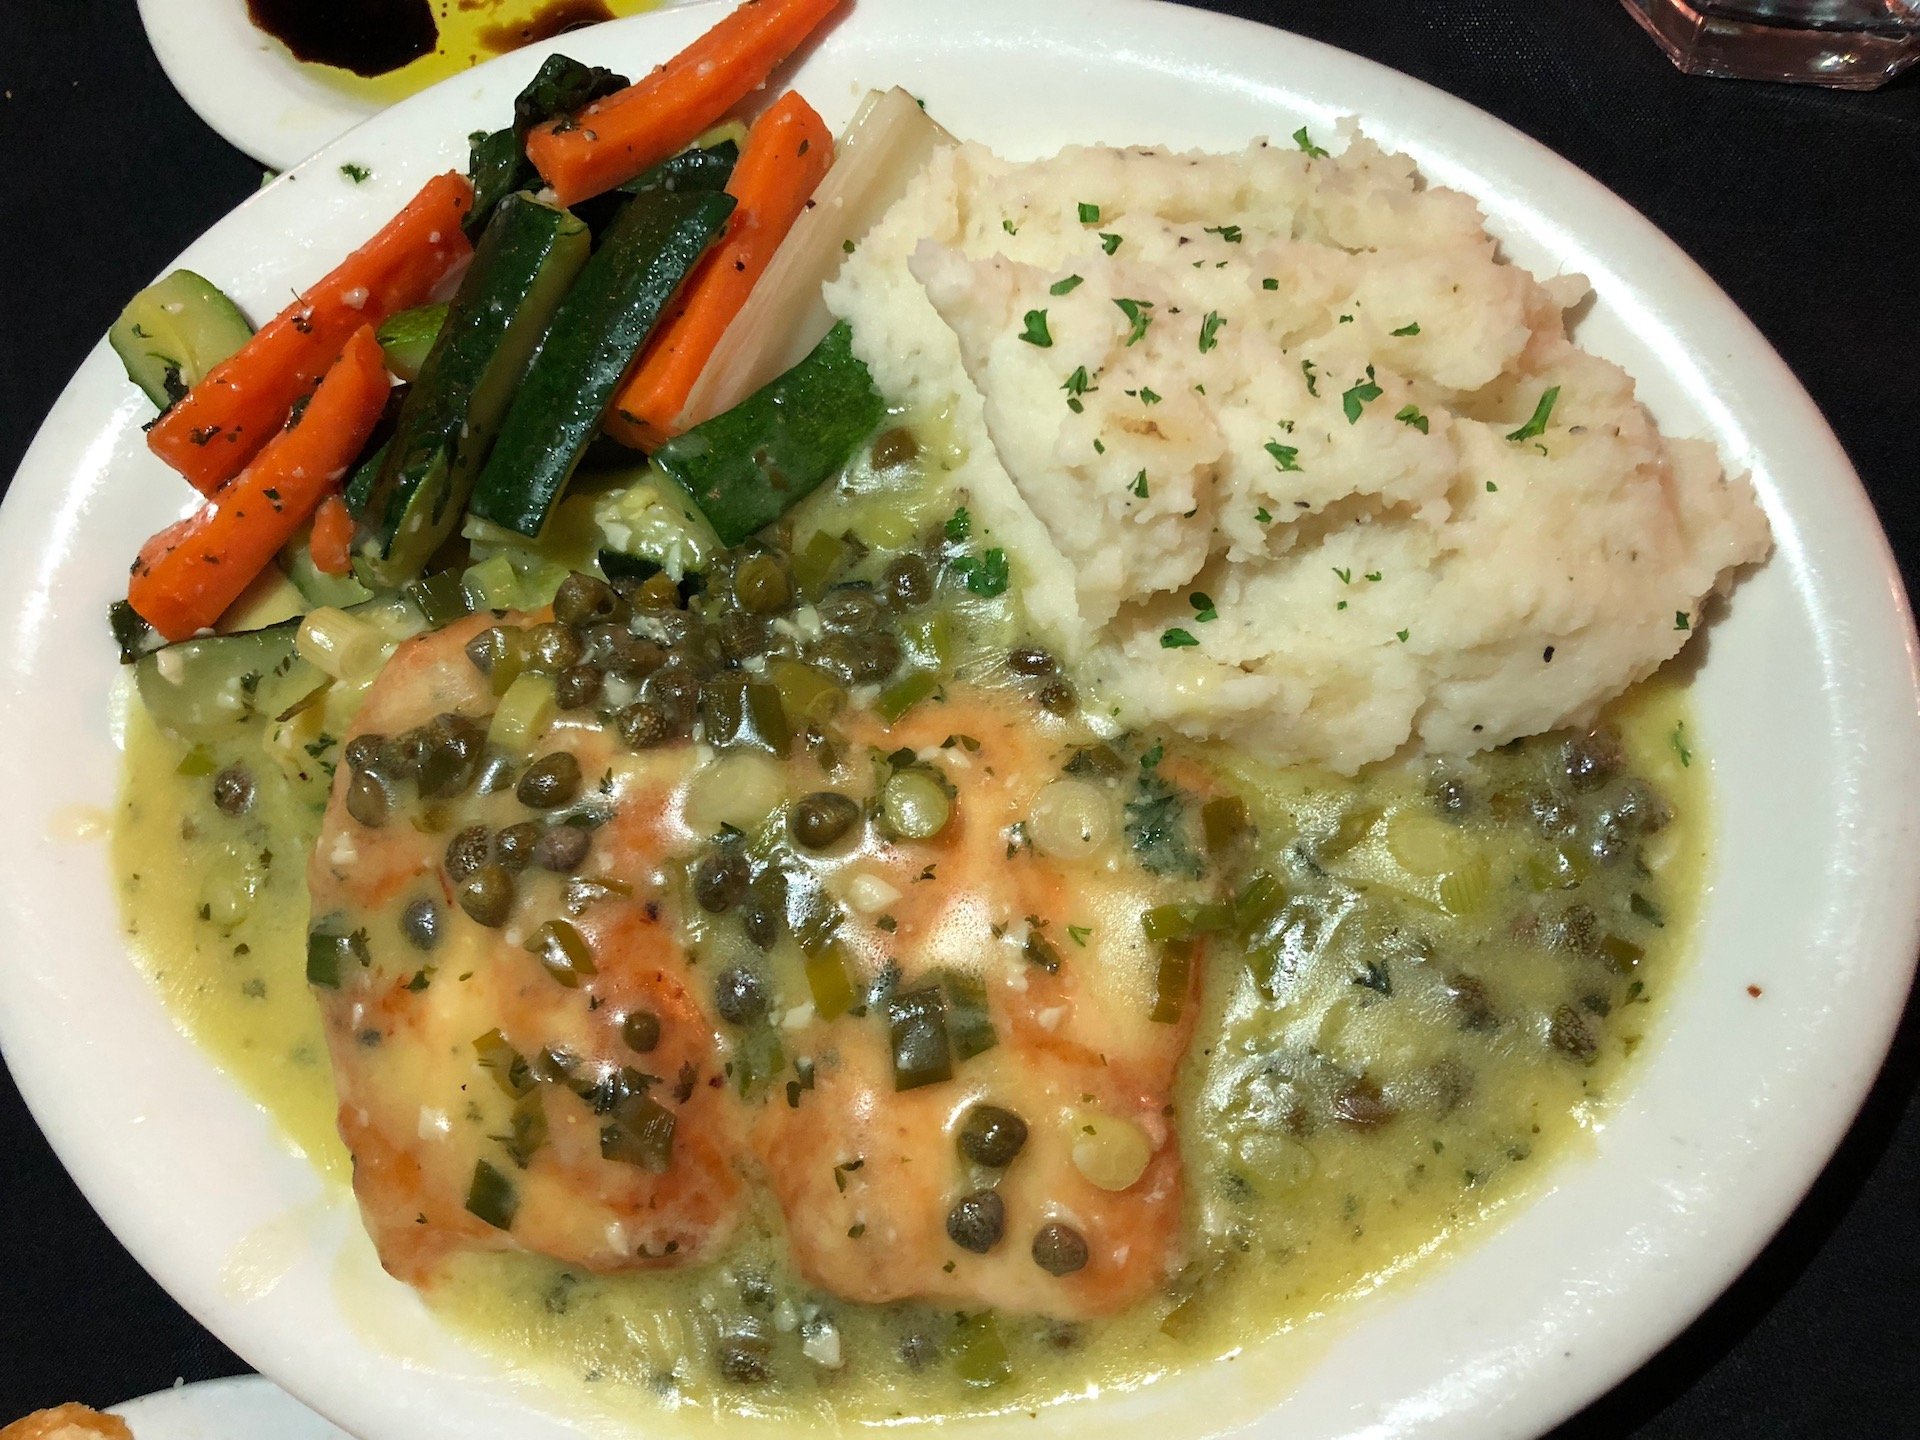 Celebrity Dining: Tried-and-true classic Italian standards like salmon picatta are nicely prepared by the Bertolucci's kitchen.